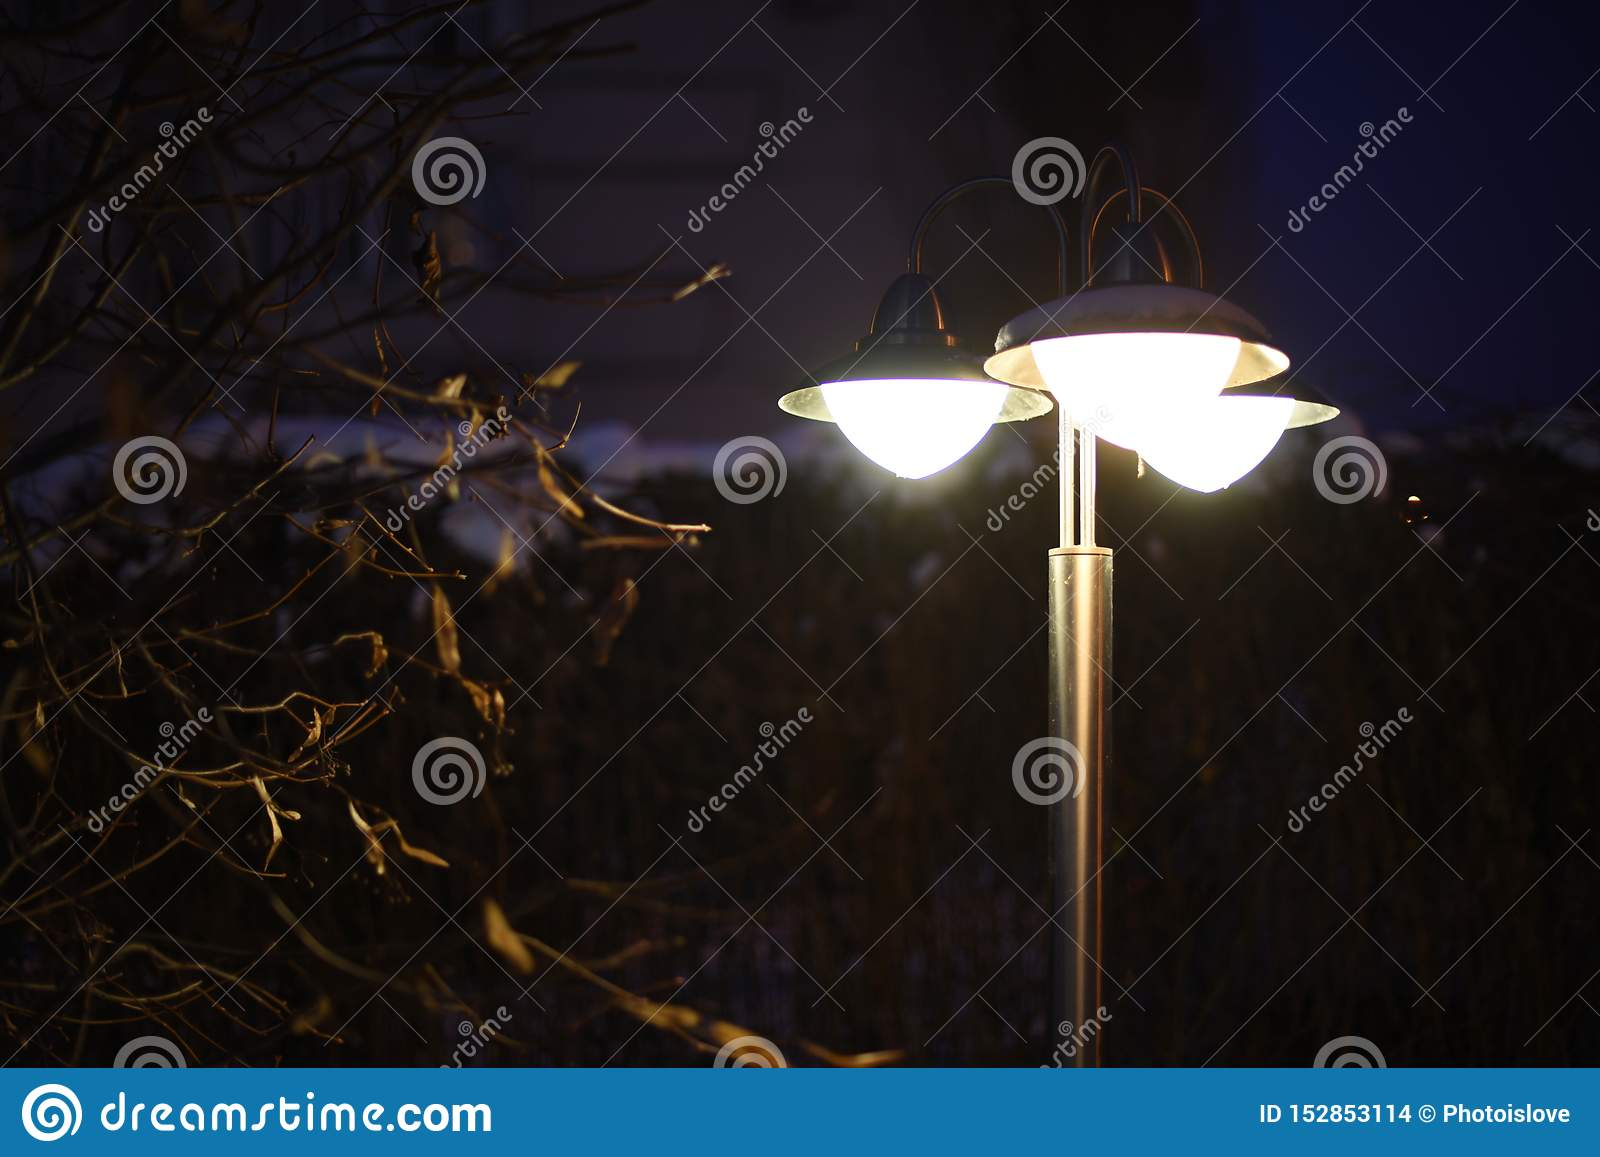 night lantern through winter branches lights the darkness. Copy space